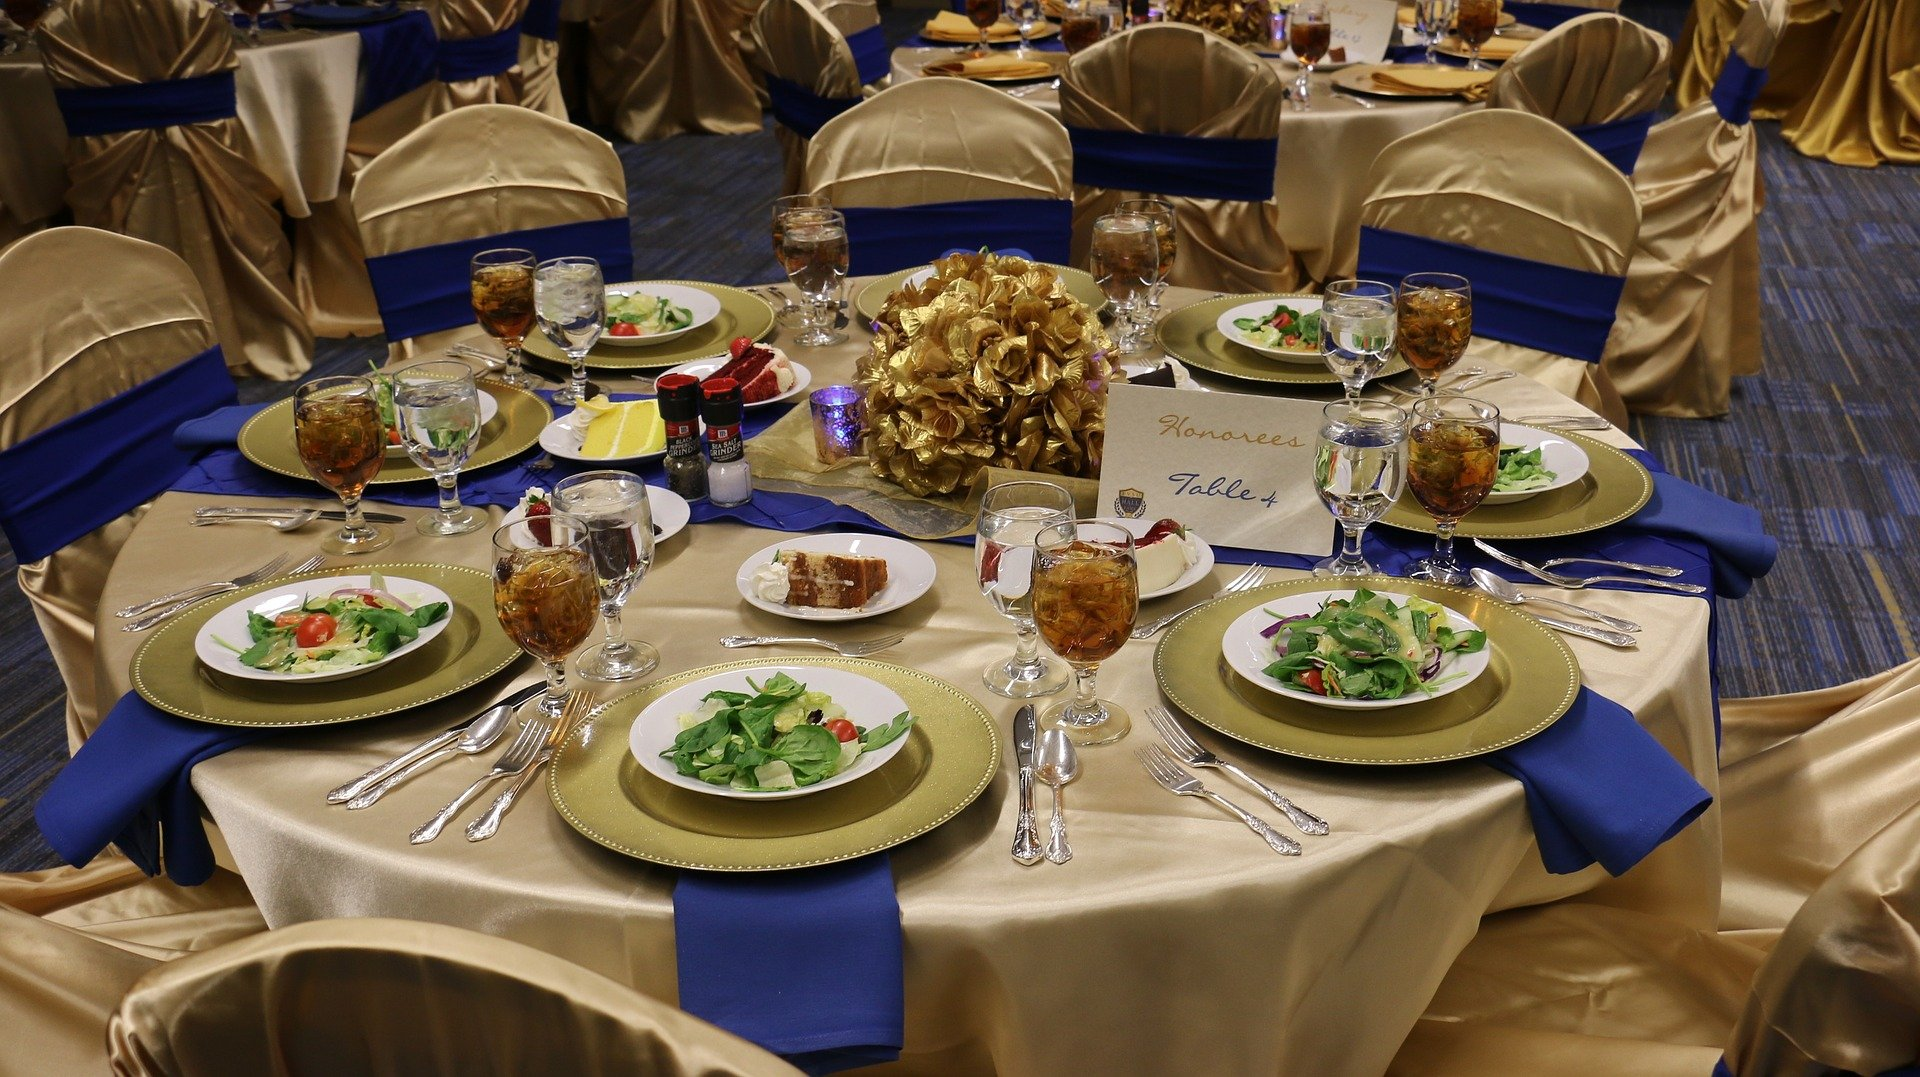 Wedding Tasting Etiquette: 10 Things You Should Be Aware Of